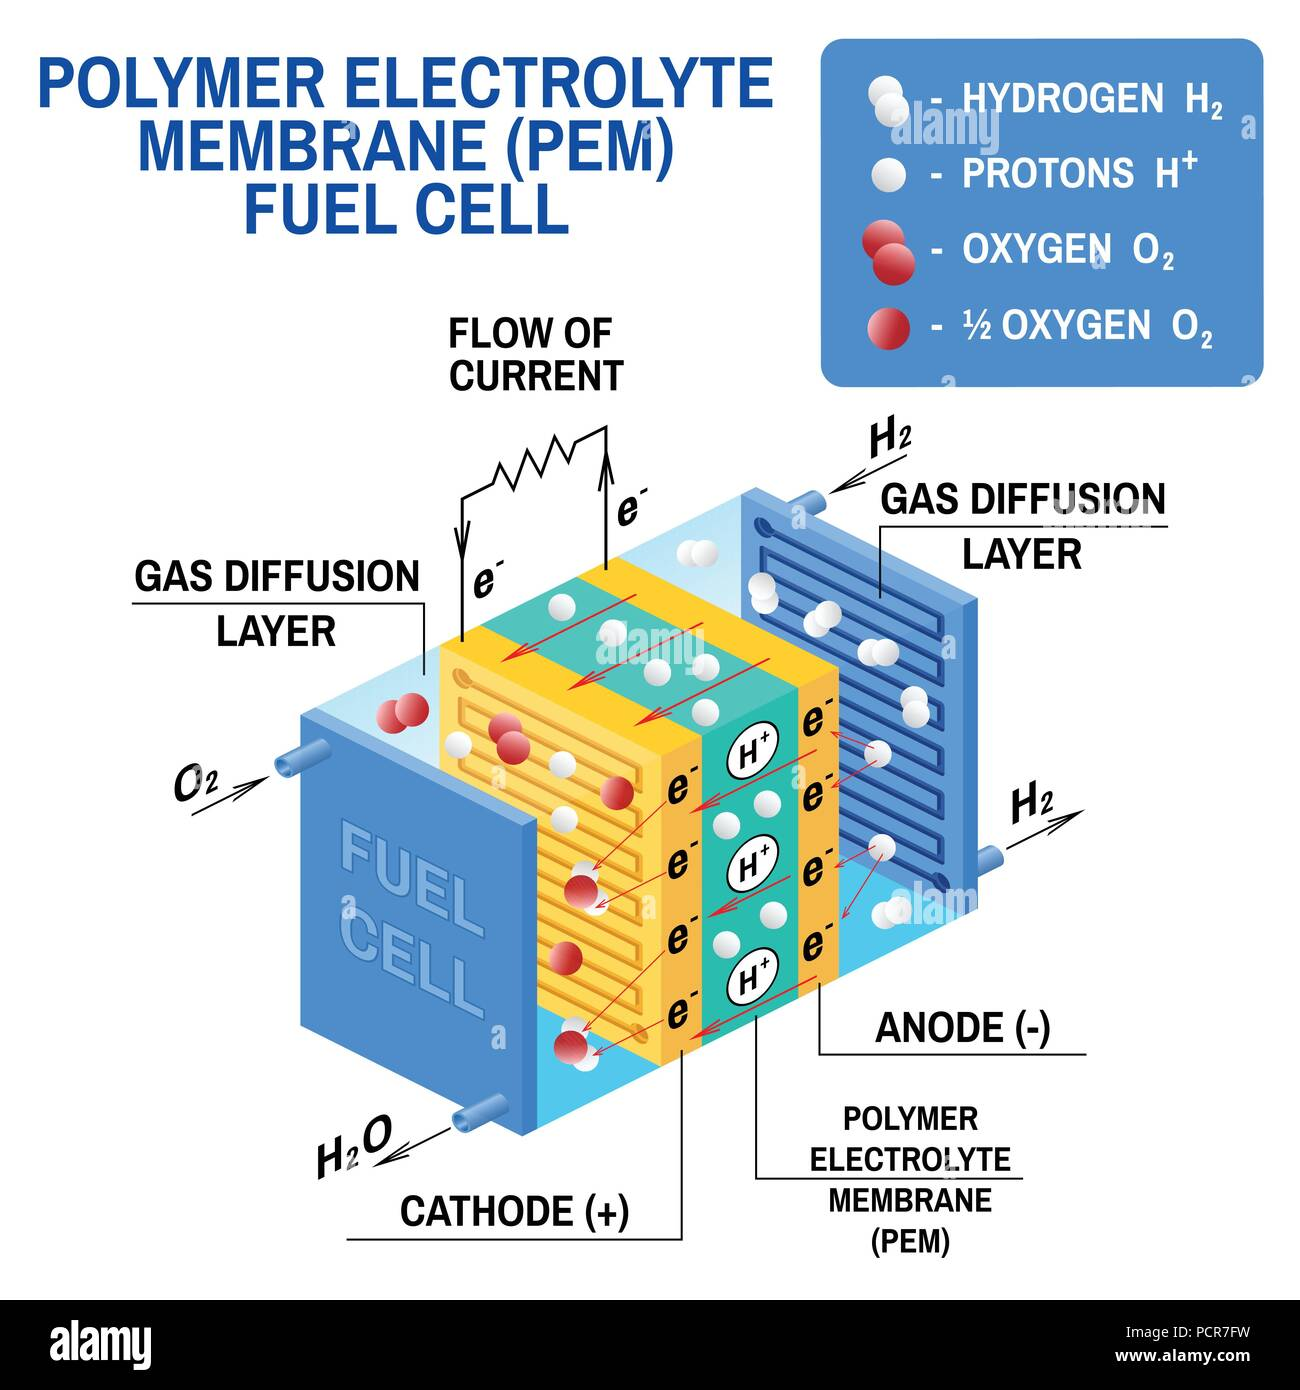 Fuel Cell Diagram Vector Device That Converts Chemical Potential Load Energy Into Electrical A Pem Proton Exchange Membrane Uses Hydrogen Gas And